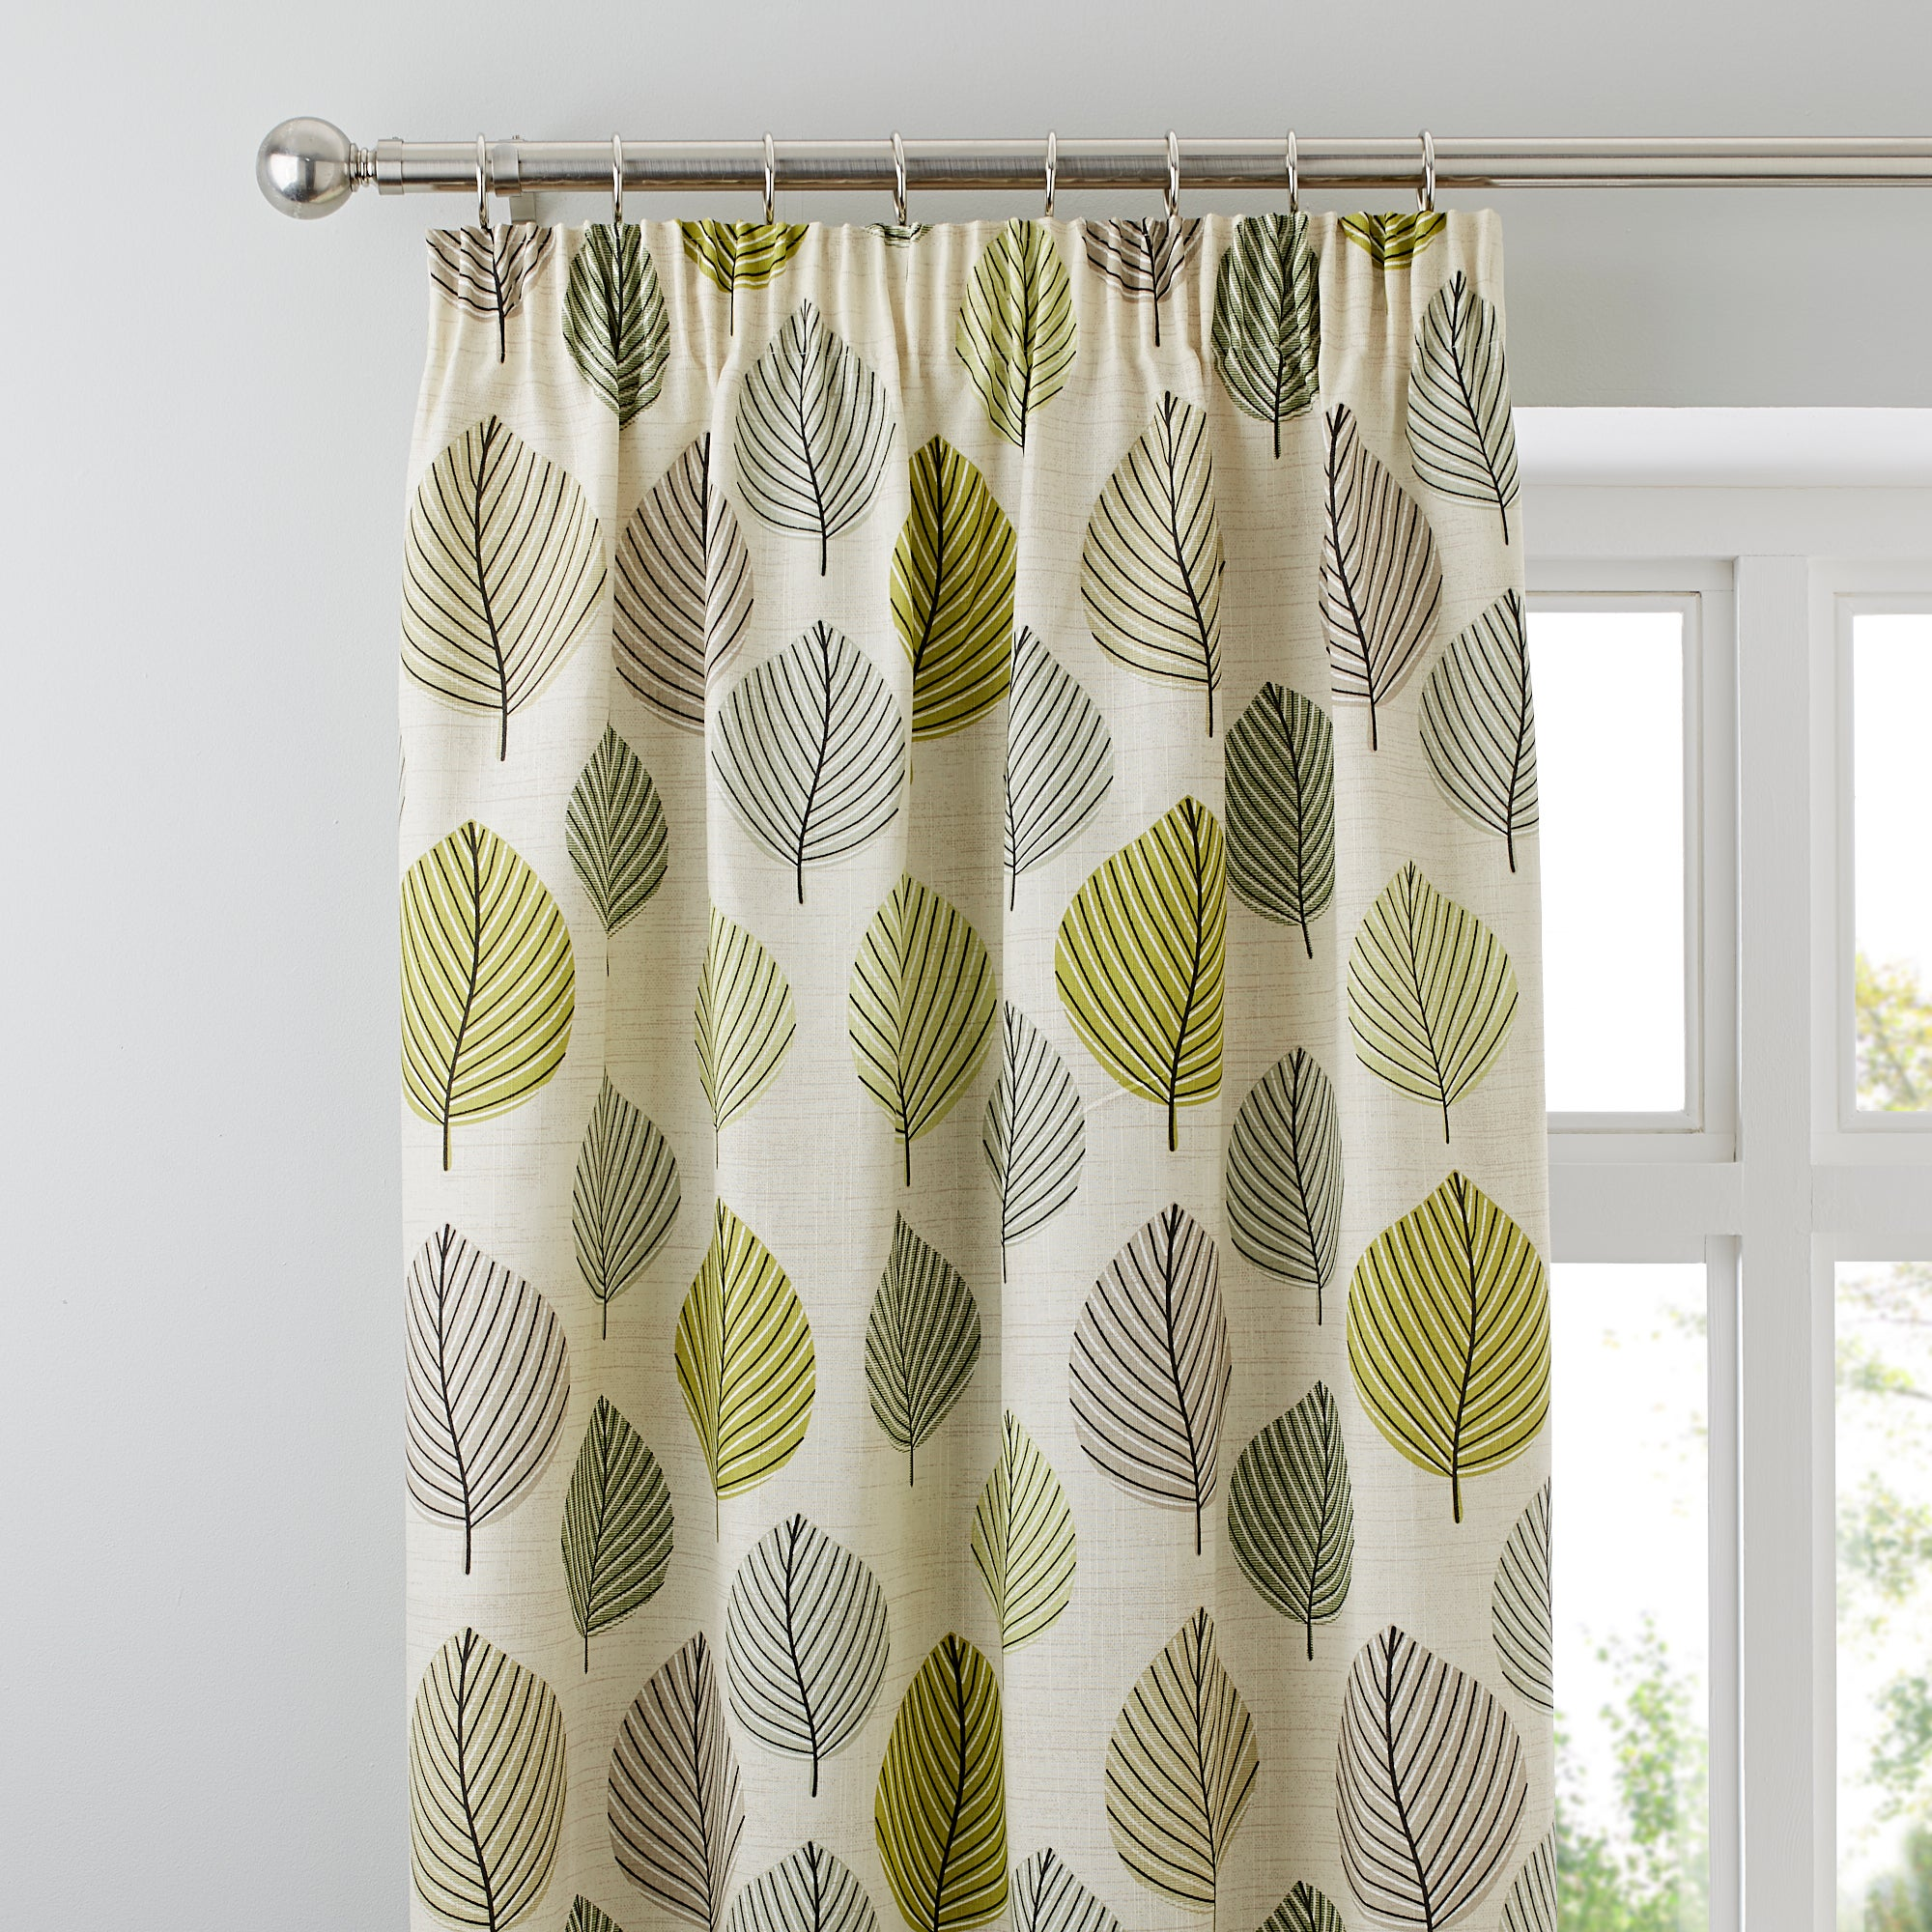 Photo of Regan green lined pencil pleat curtains green